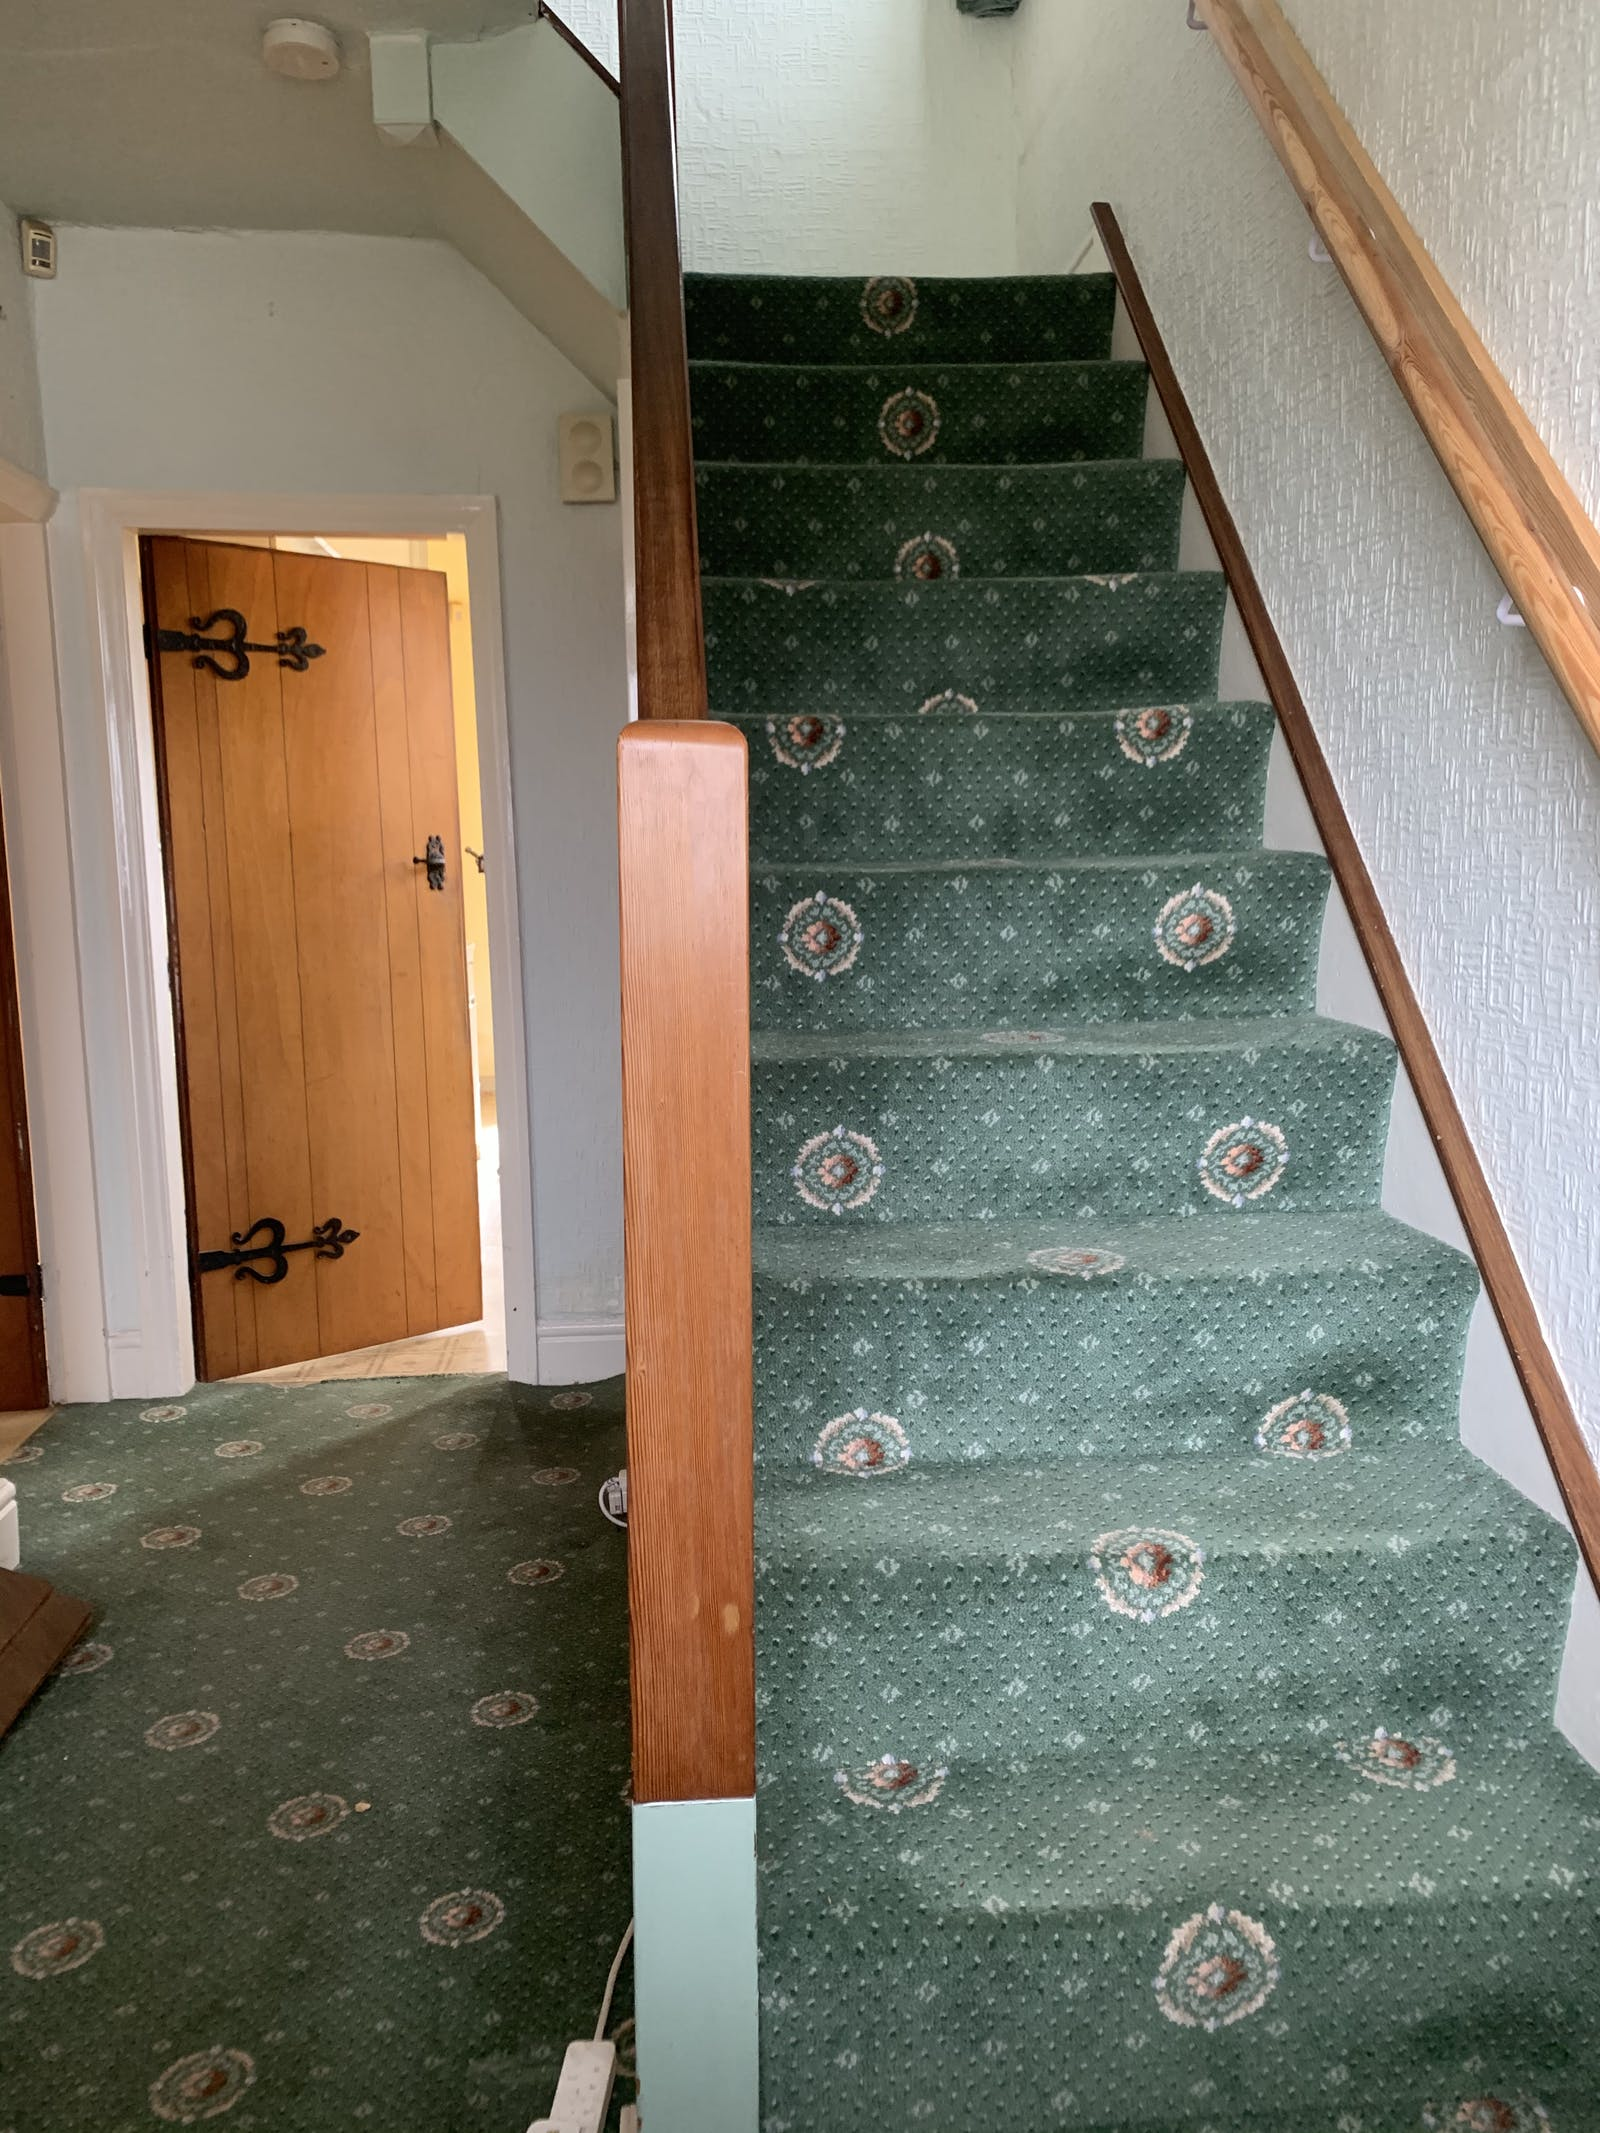 Image of hallway with dated green carpet running up stairs